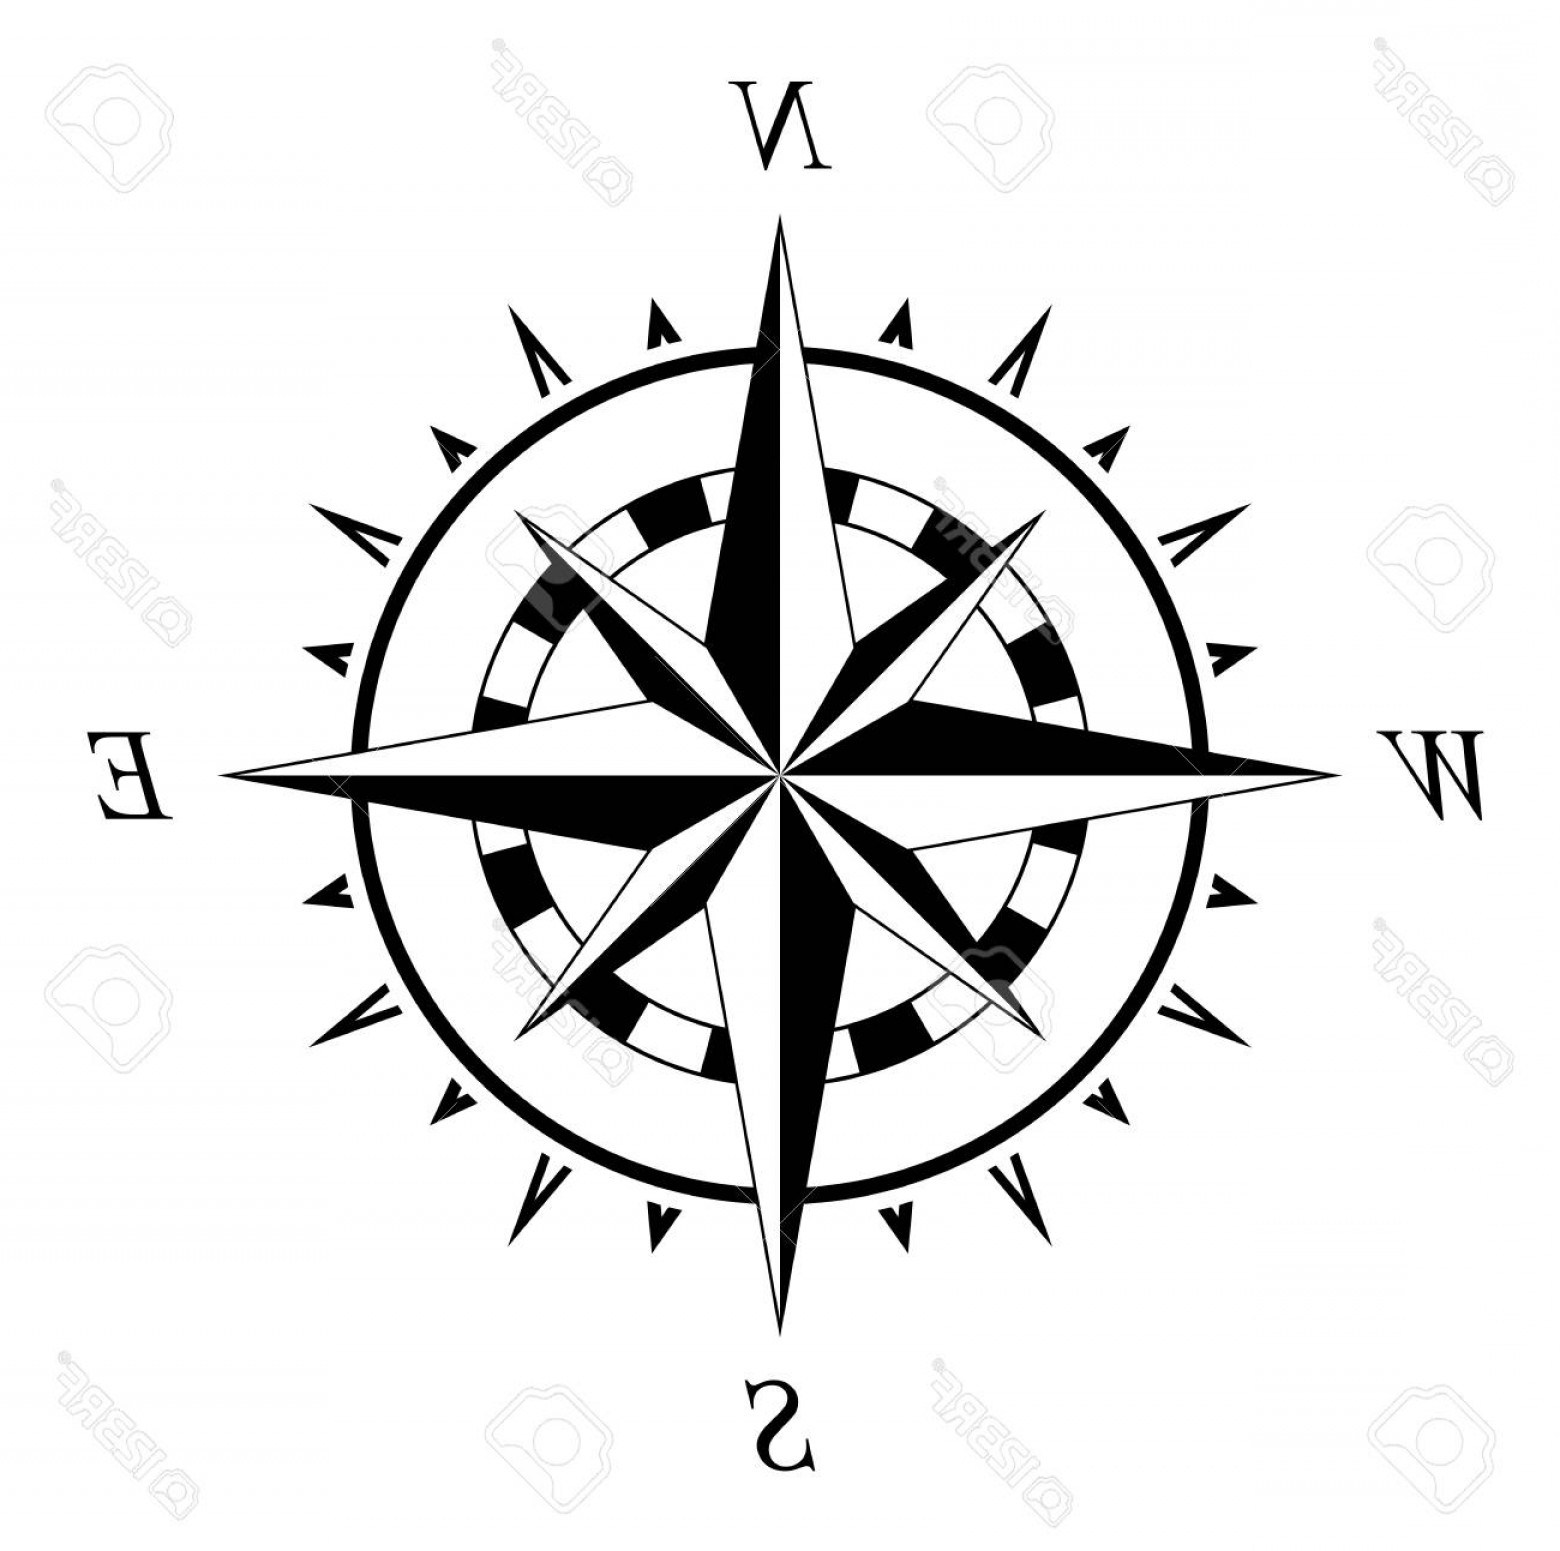 1560x1551 Photostock Vector Compass Rose Marine Navigation Illustration